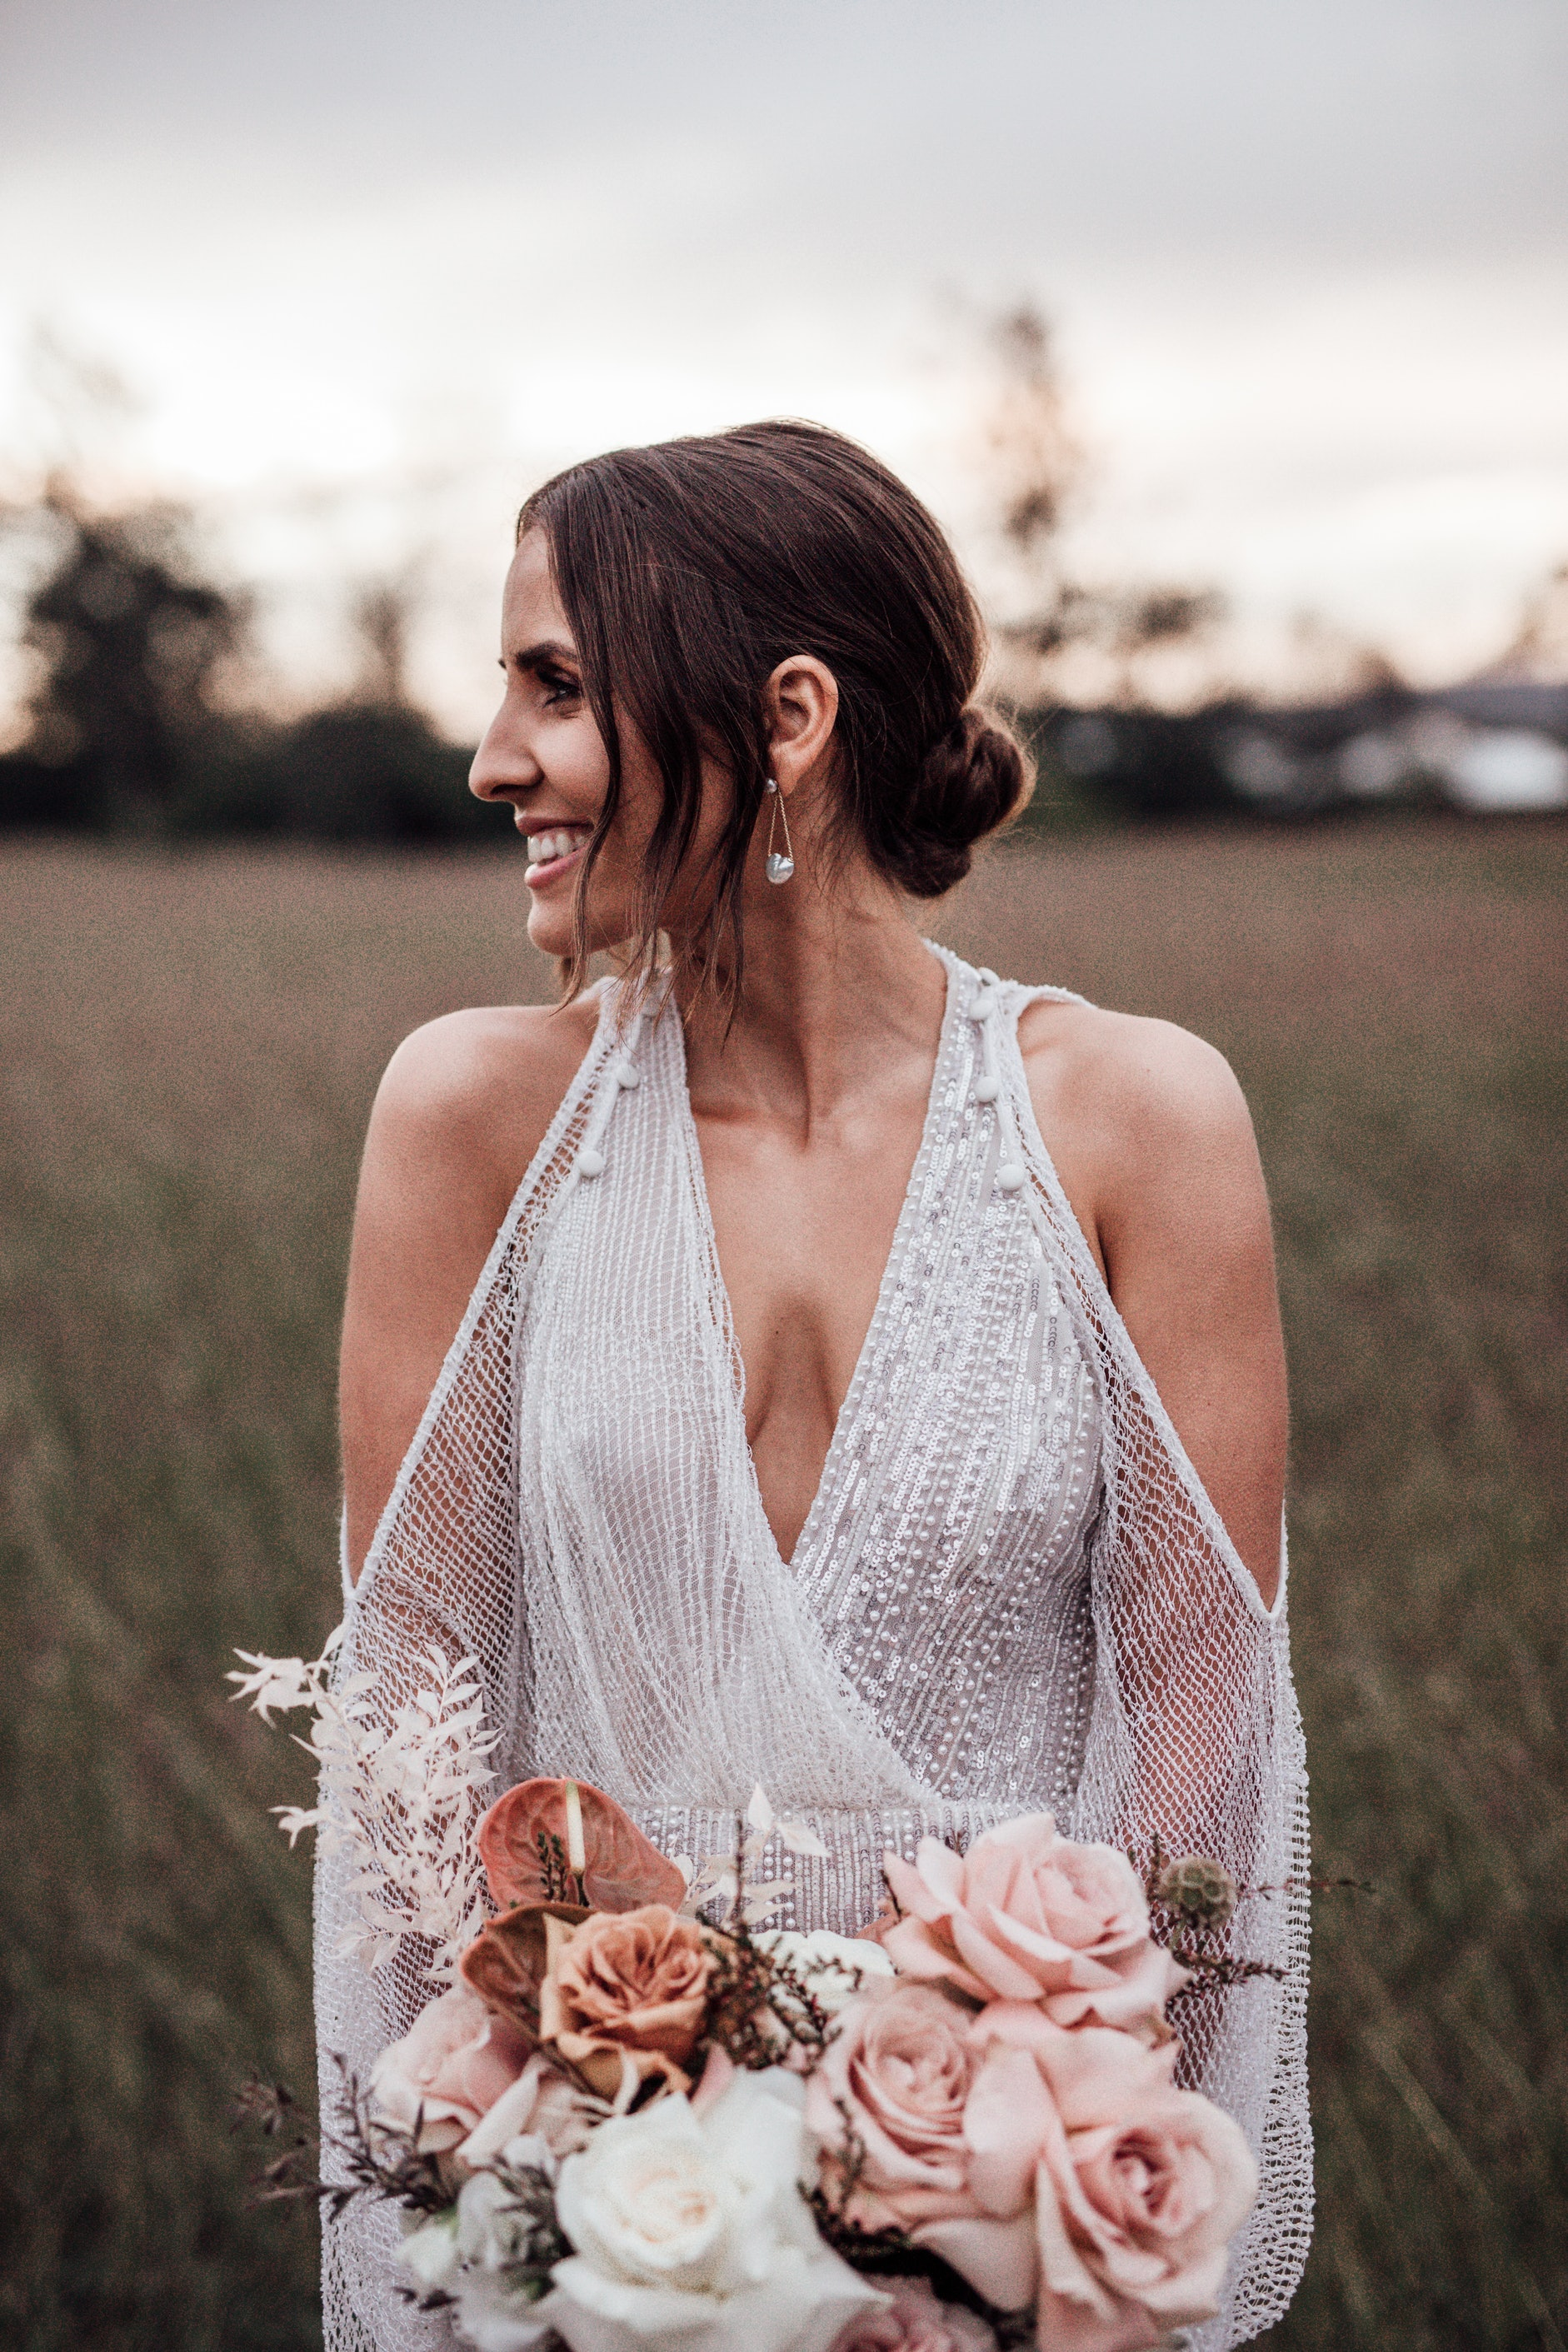 Bride holding bouquet and posing